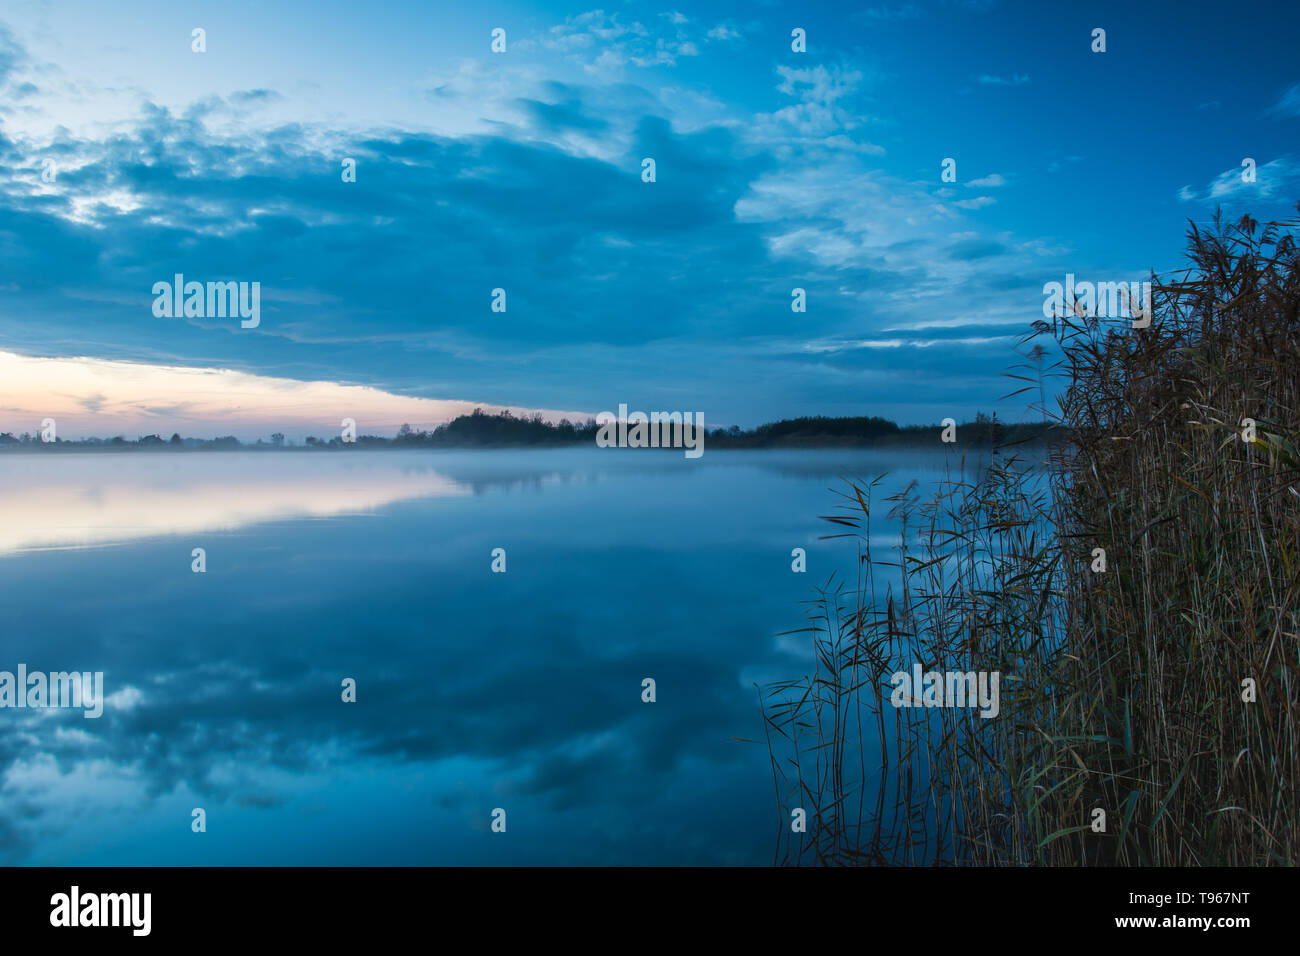 Reeds on the lake shore, evening fog and clouds reflecting in the water. Stock Photo